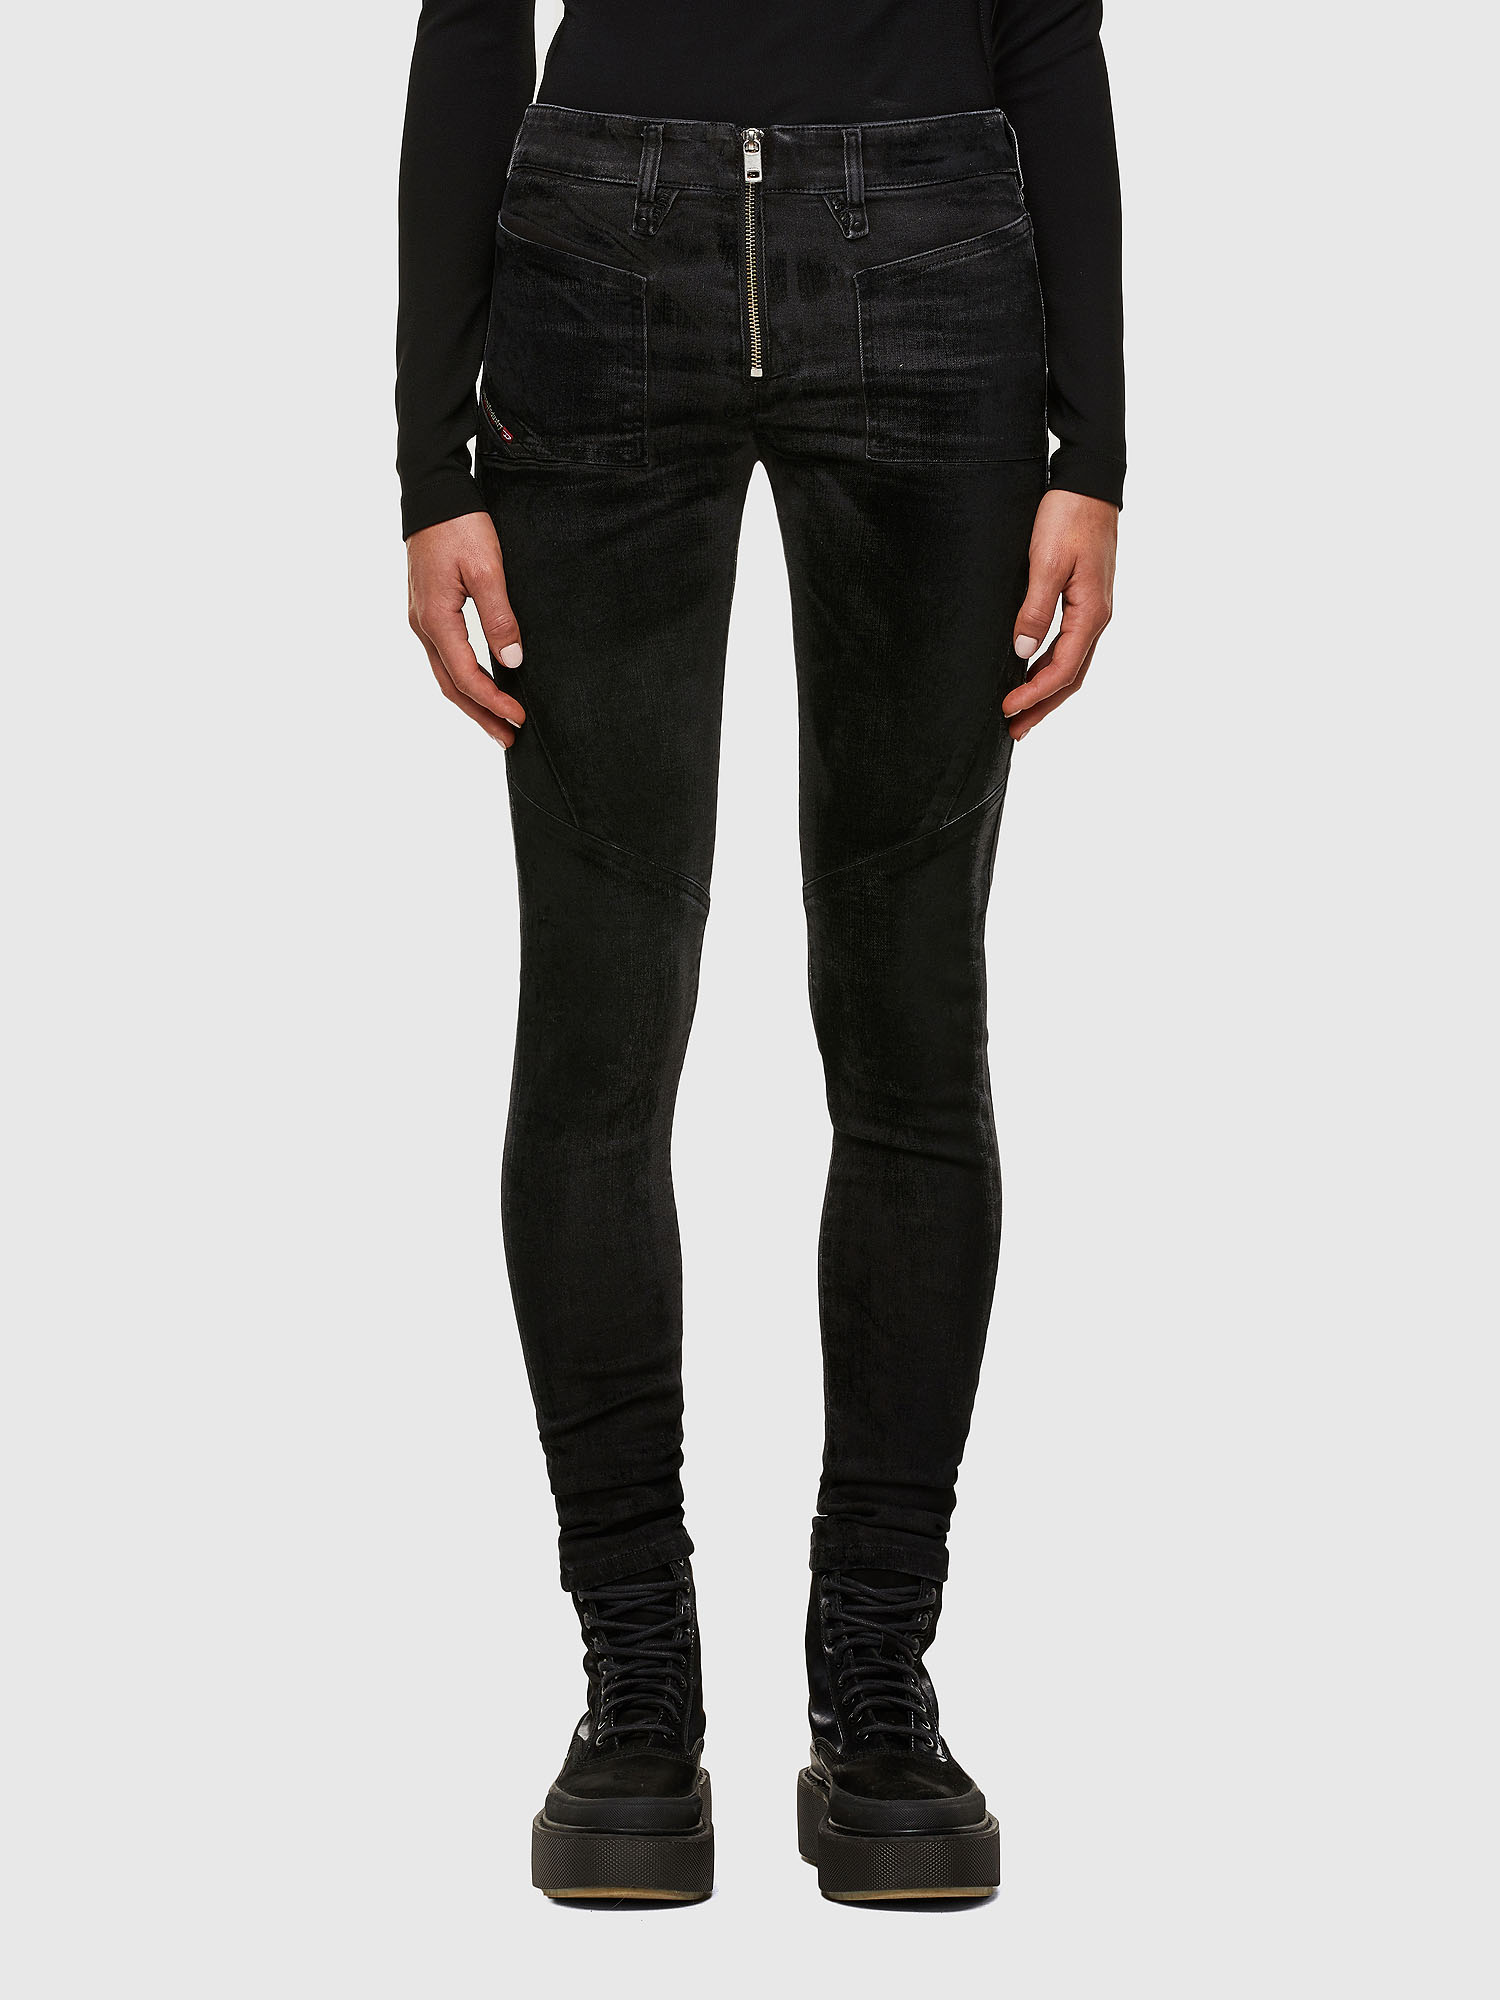 Diesel - Slandy 069TC, Black/Dark grey - Jeans - Image 1